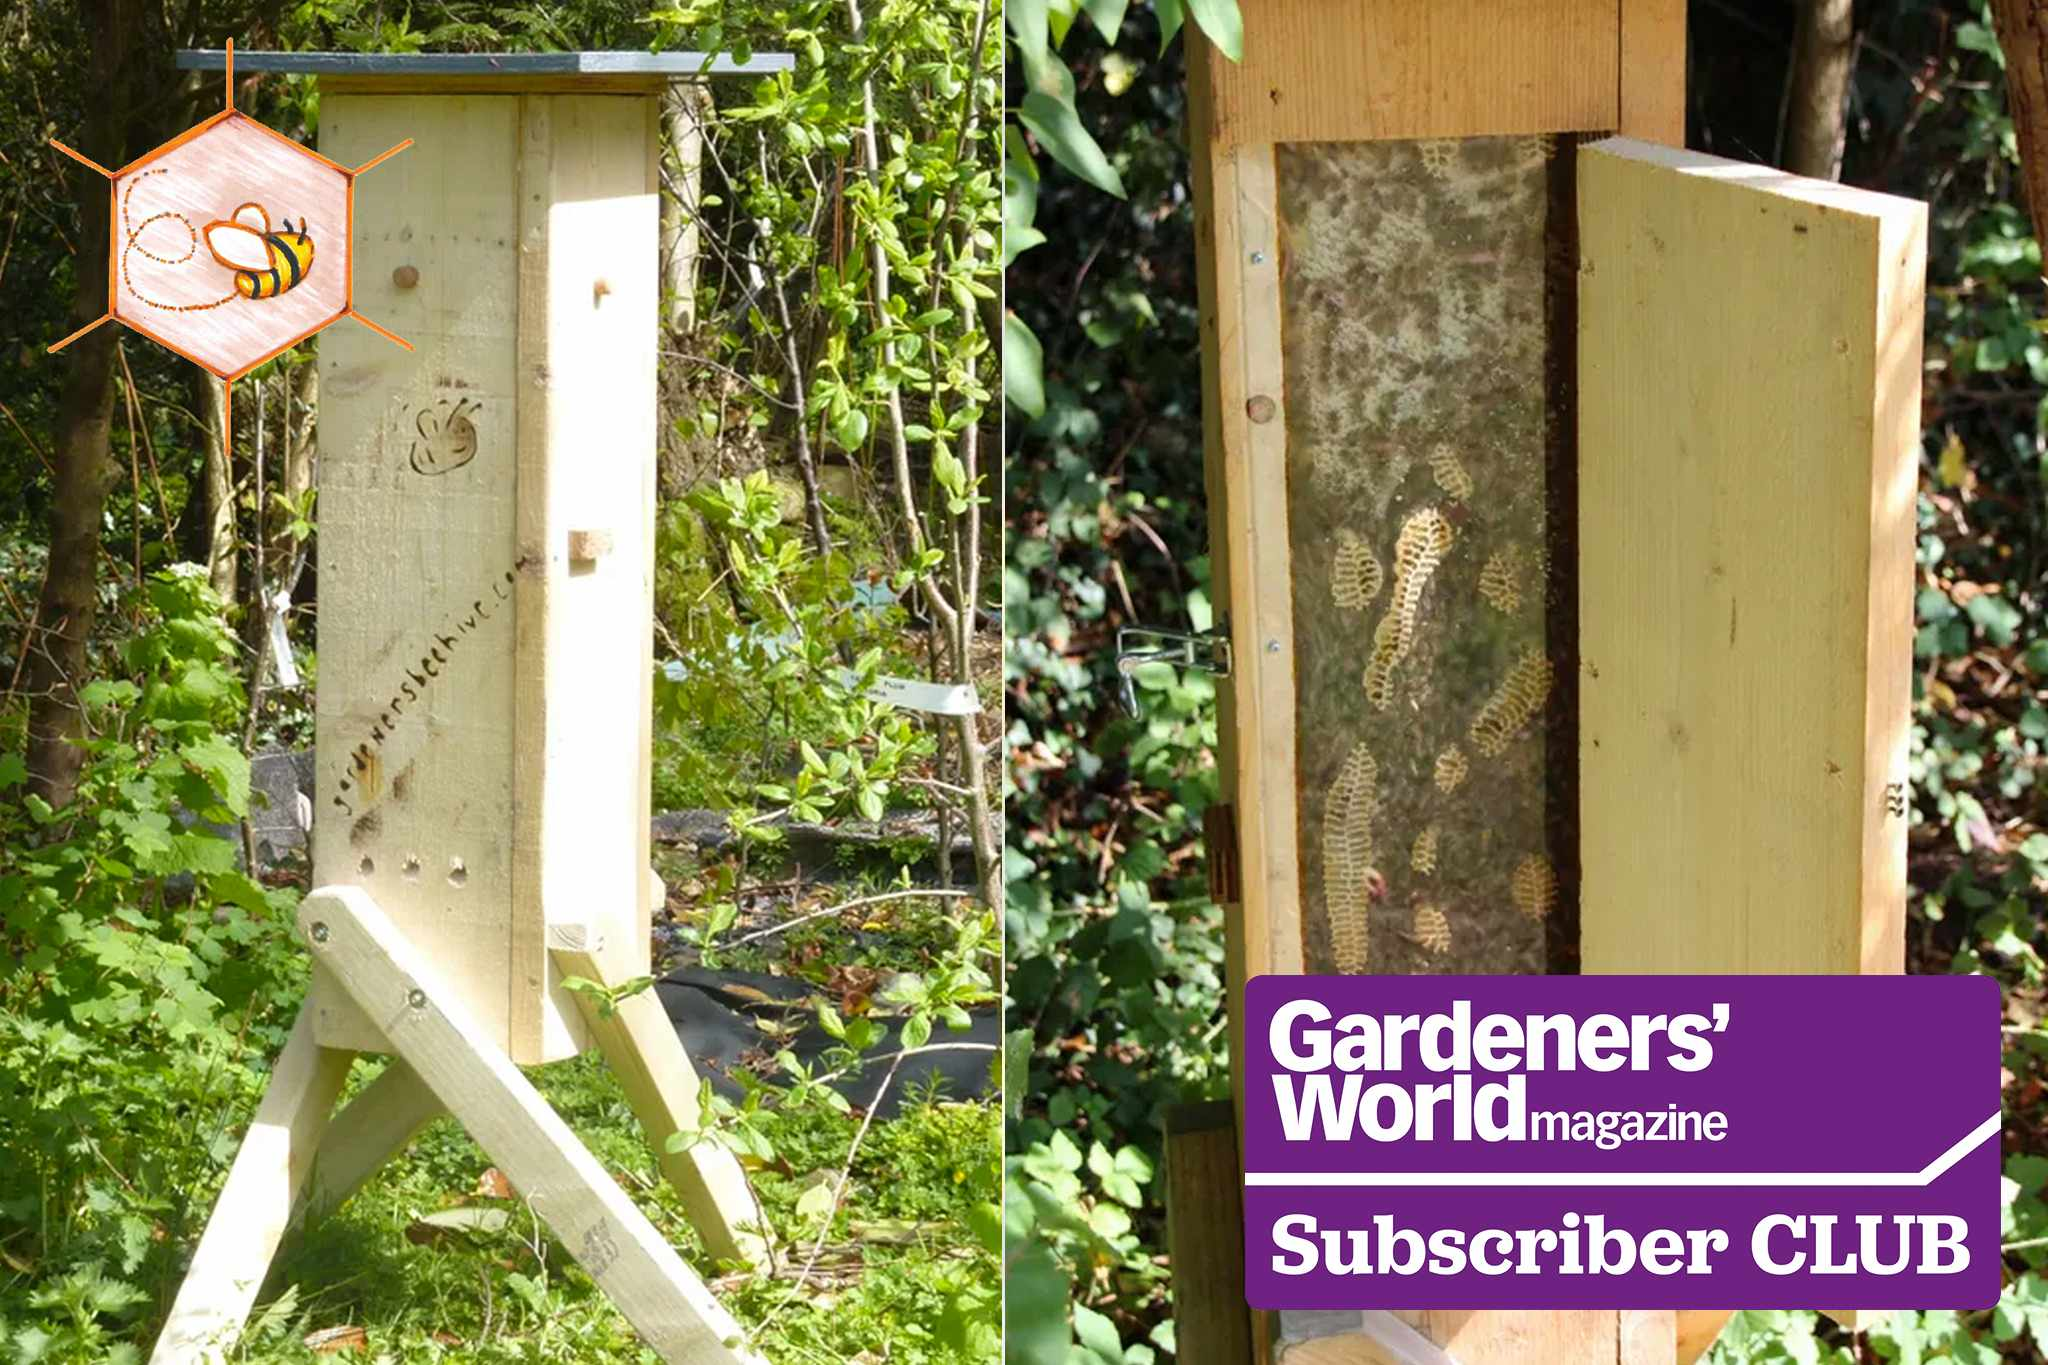 Win a Gardeners Beehive, worth £300 - Subscriber Club exclusive